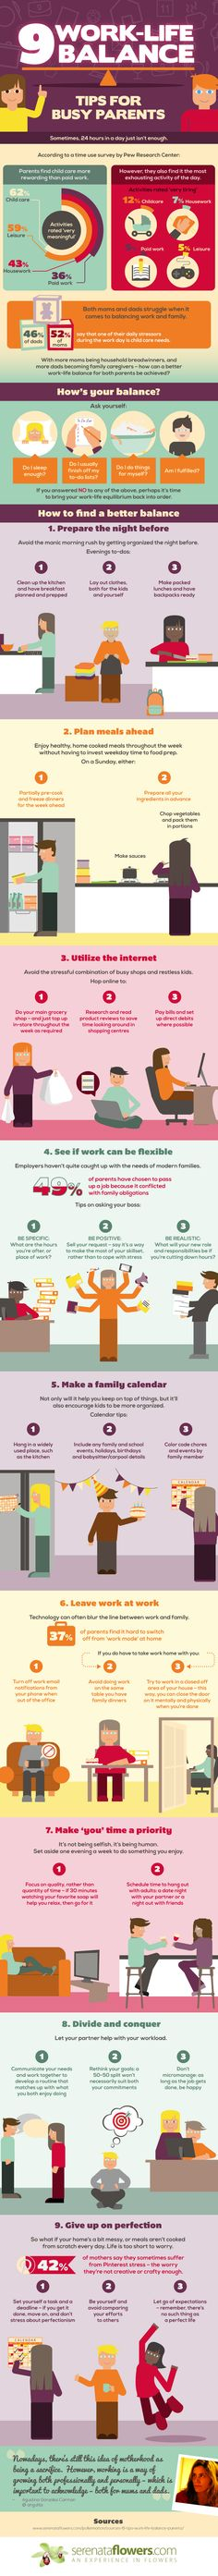 Infographic with nine work life balance tips for busy parents. If you are trying to have a career, work-life balance is not a simple task. Working Mom Tips, Working Mums, Kids And Parenting, Parenting Hacks, Parenting Styles, Single Parenting, Parenting Quotes, Parenting Classes, Work Life Balance Tips